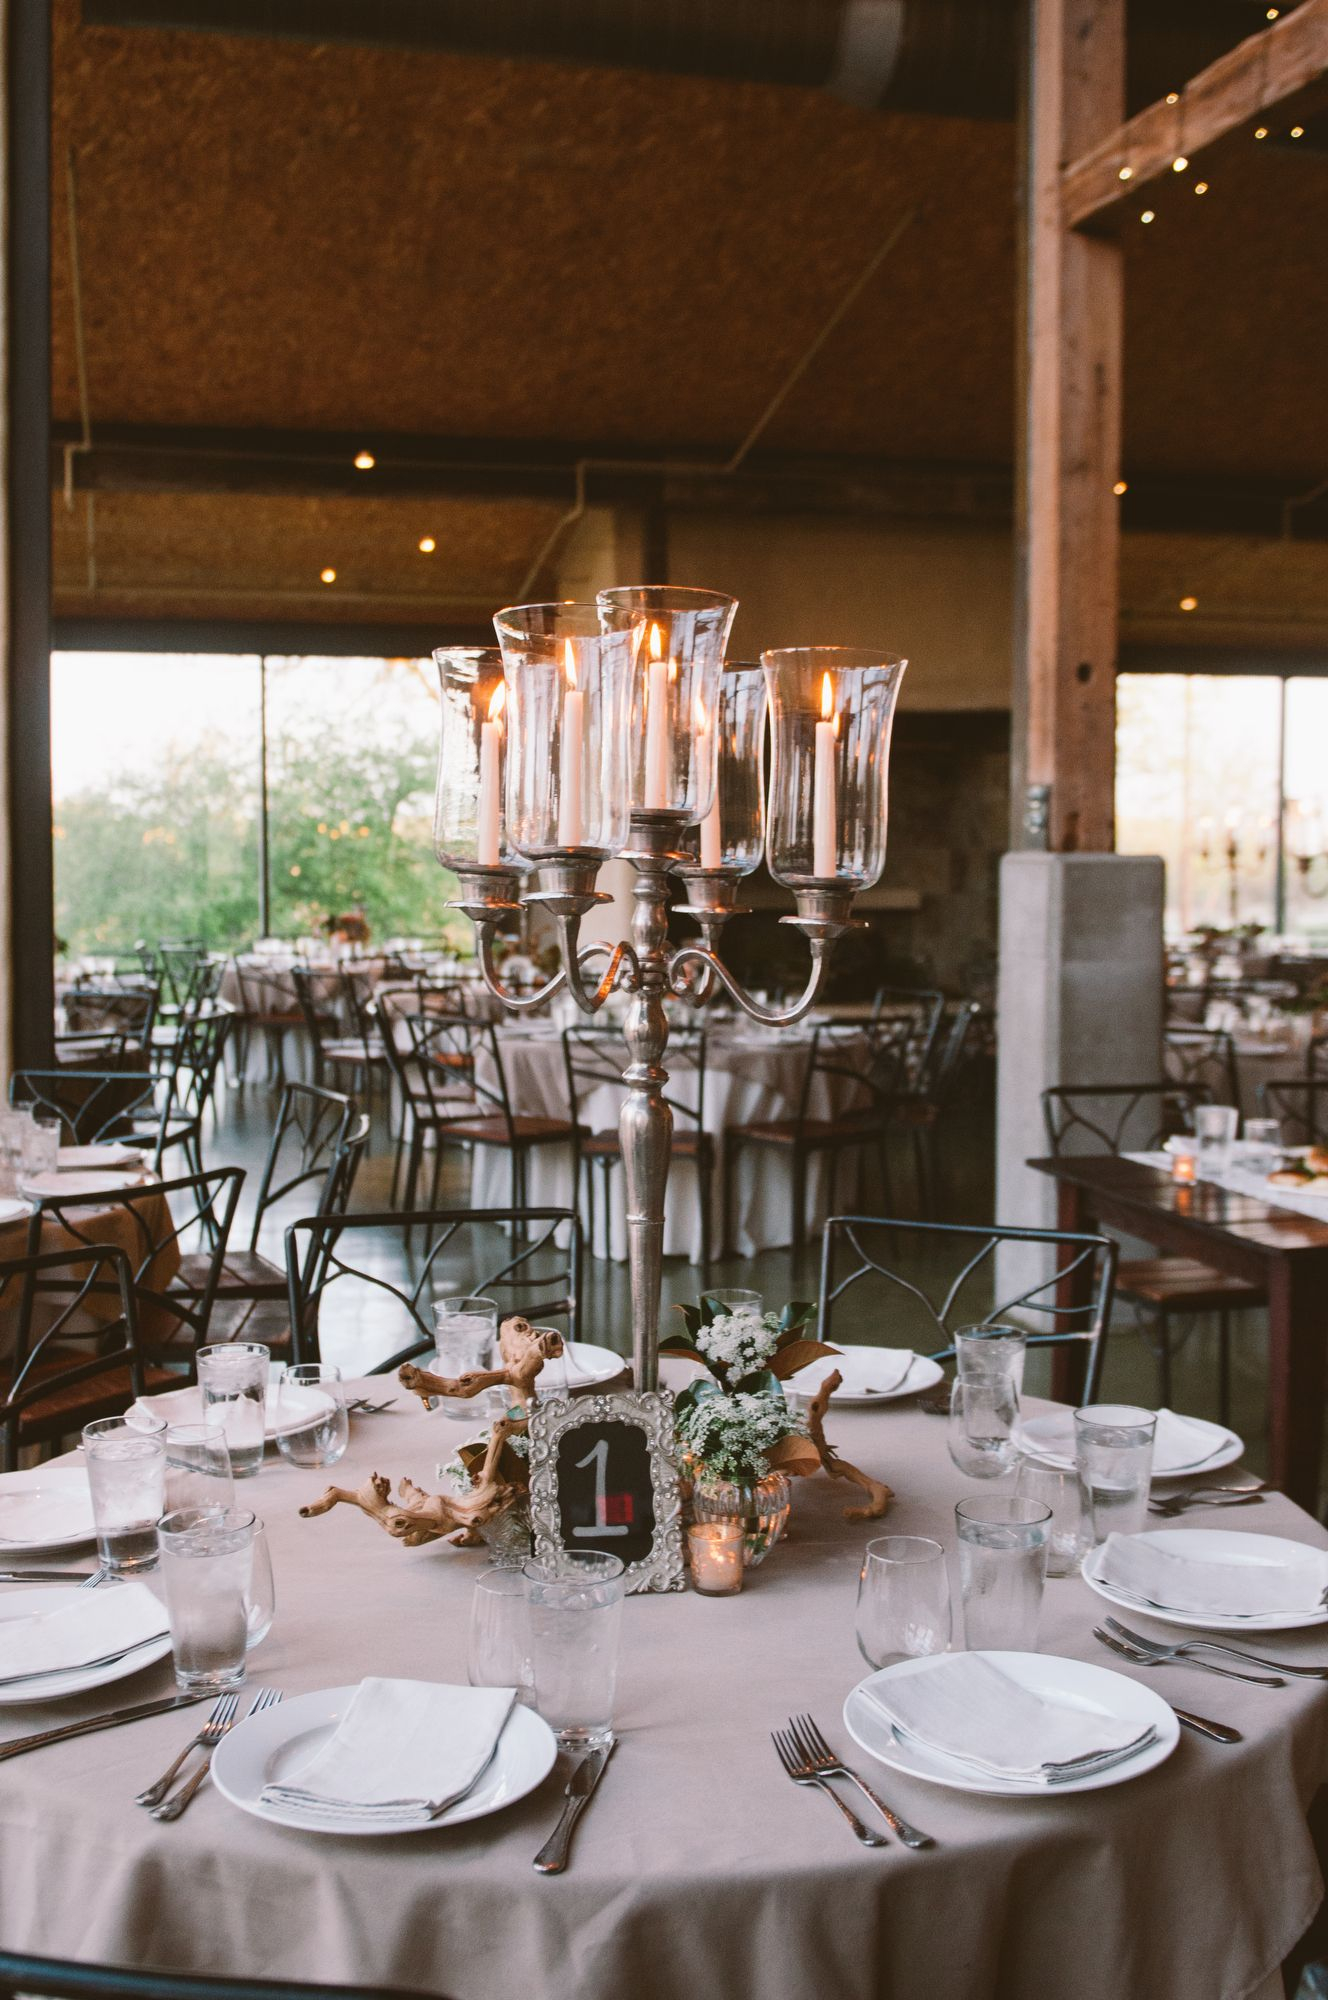 Option for the alternative tall centerpiece silver candelabras option for the alternative tall centerpiece silver candelabras with taper candles in glass hurricanes surrounded at the base by a trio of gold vases reviewsmspy